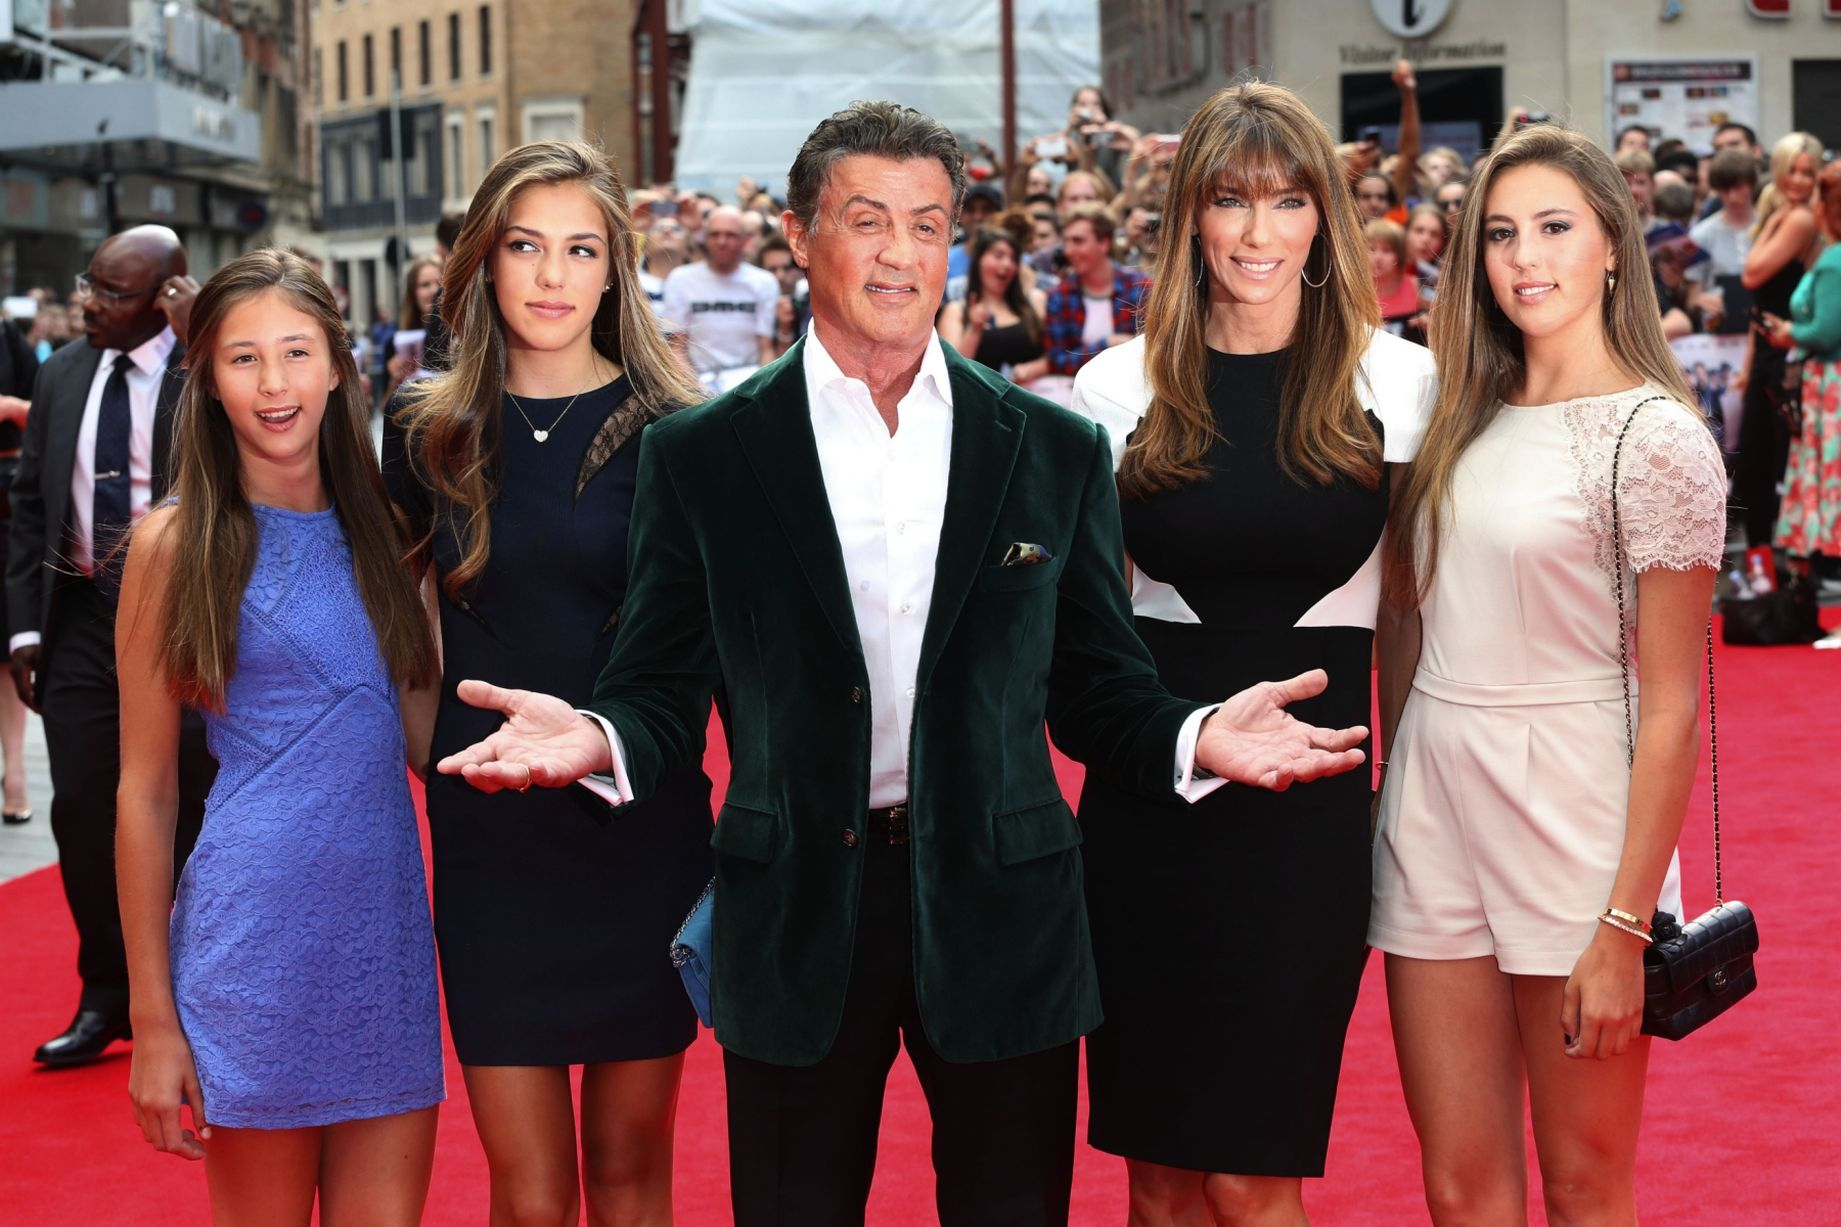 Sylvester Stallone Family Photos, Wife, Son, Father, Age, Net Worth